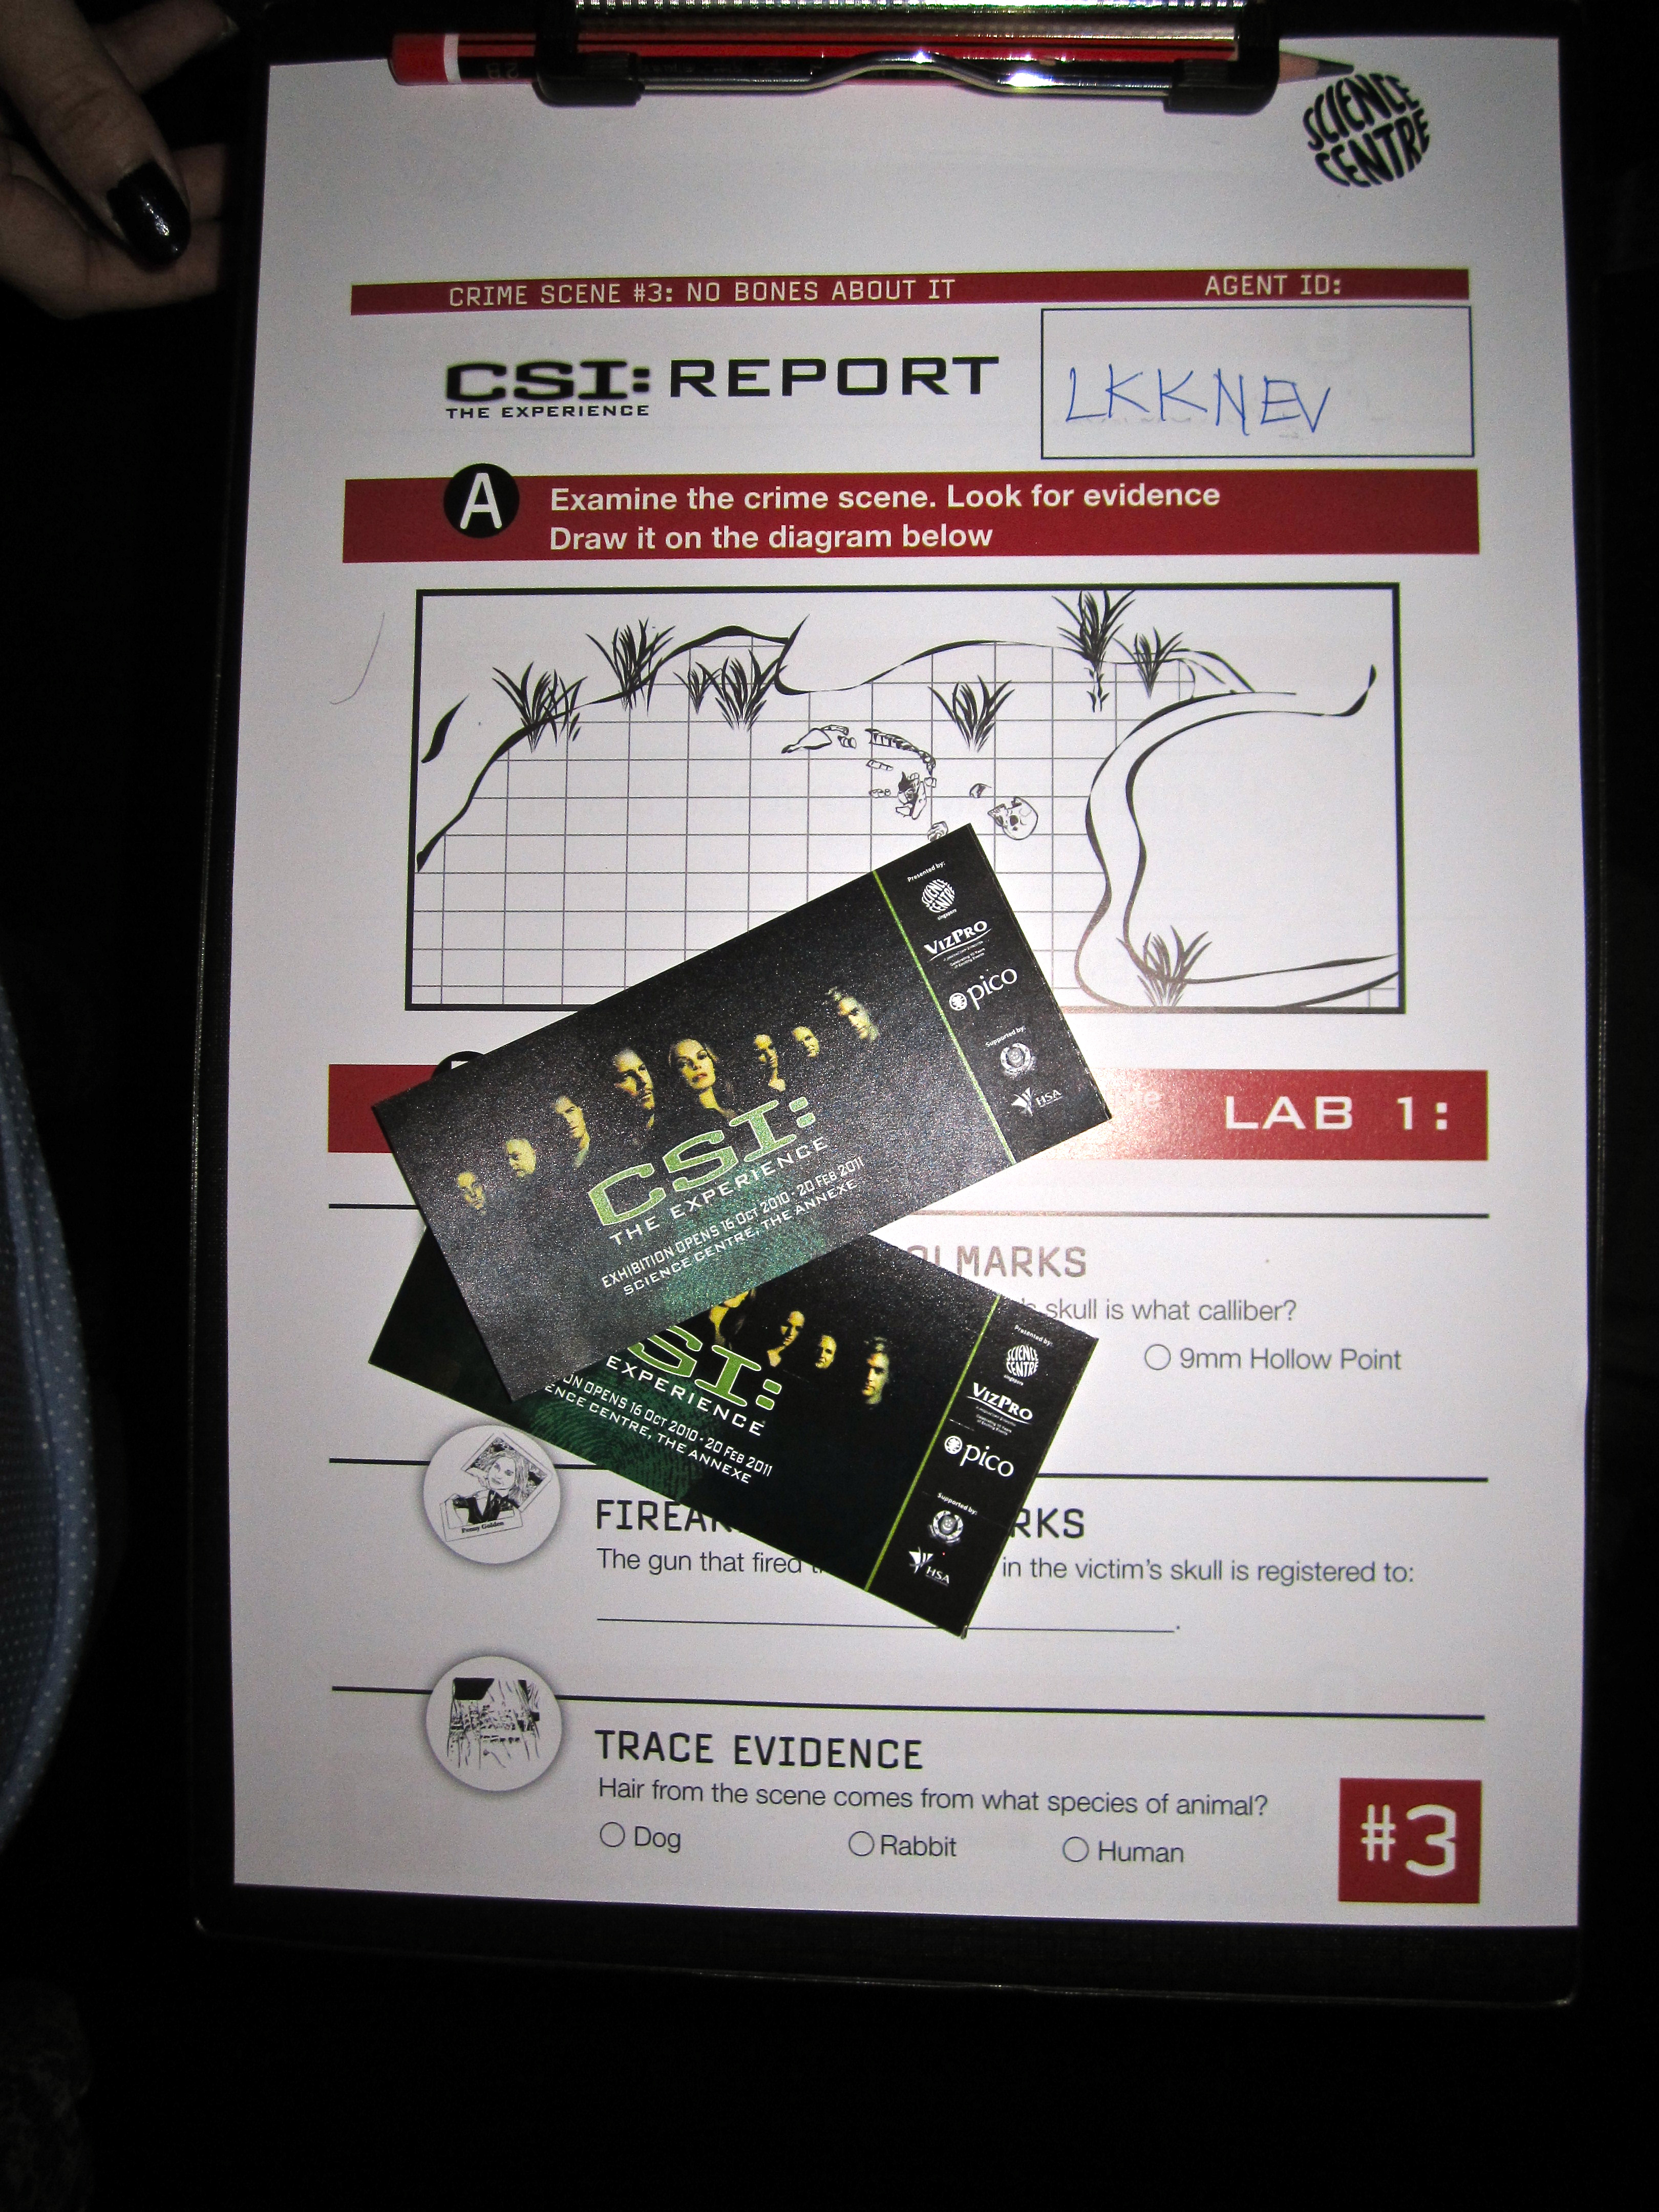 Forensic Science Interactive Forensic Science Games For Kids